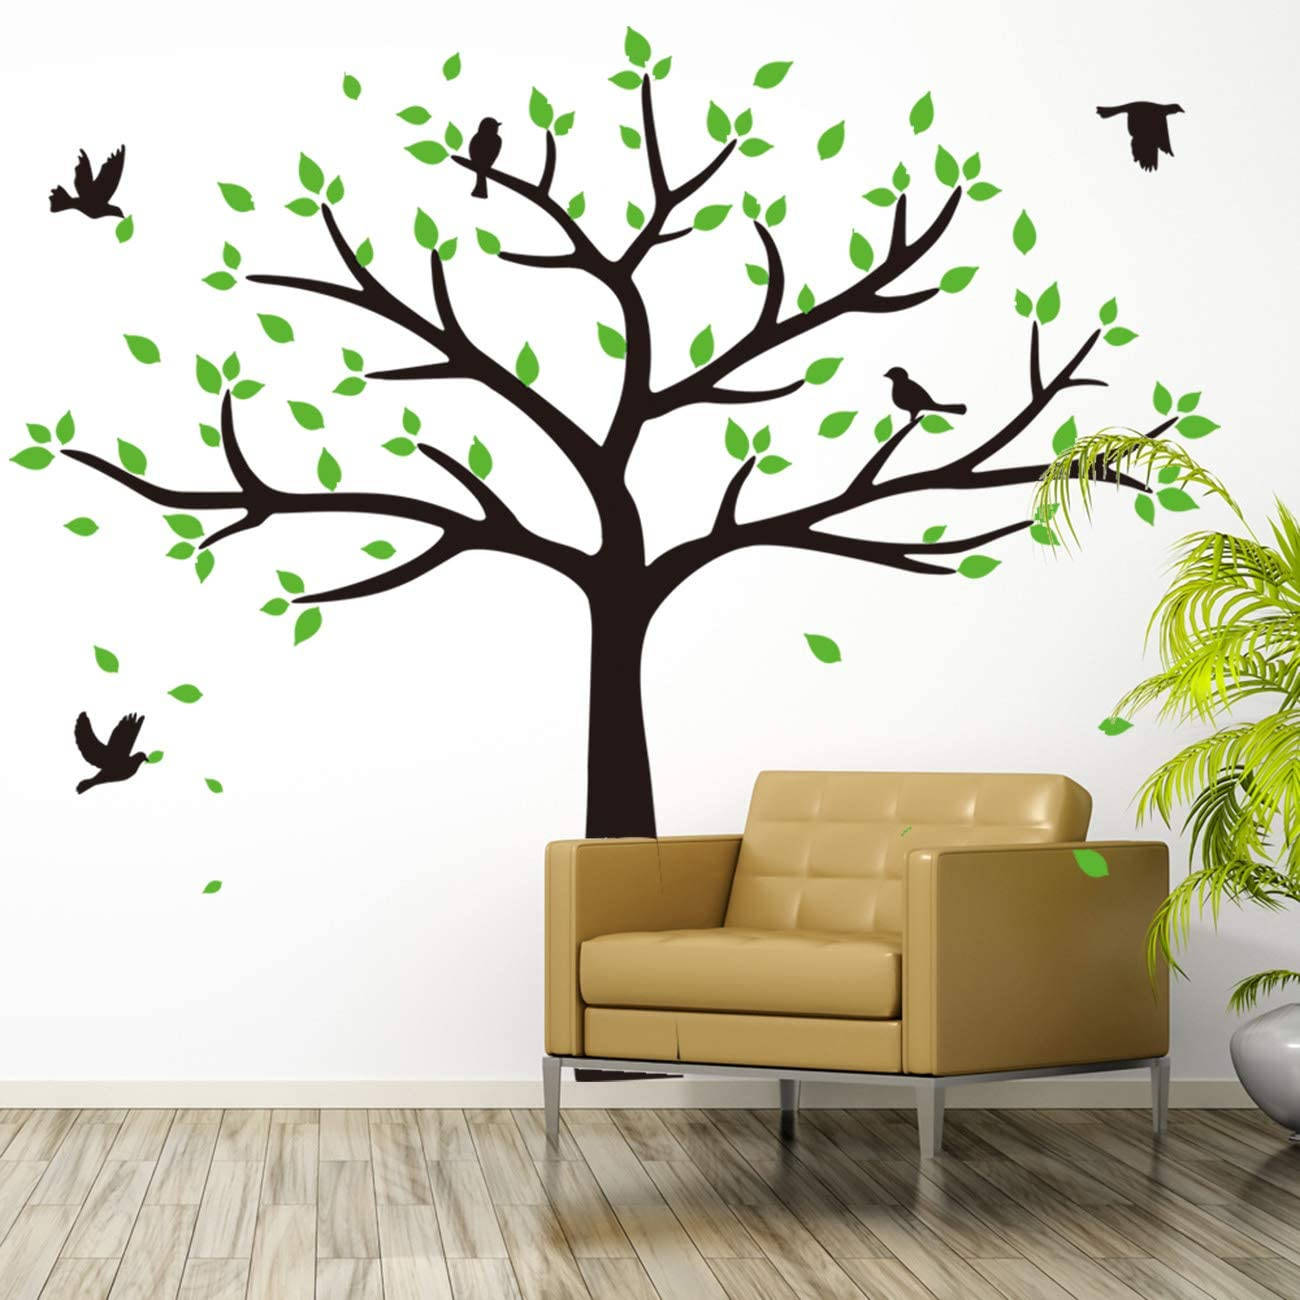 Giant Family Photo Tree Wall Decal Removable Wall Stickers for Baby Kids Room Decor (Black)